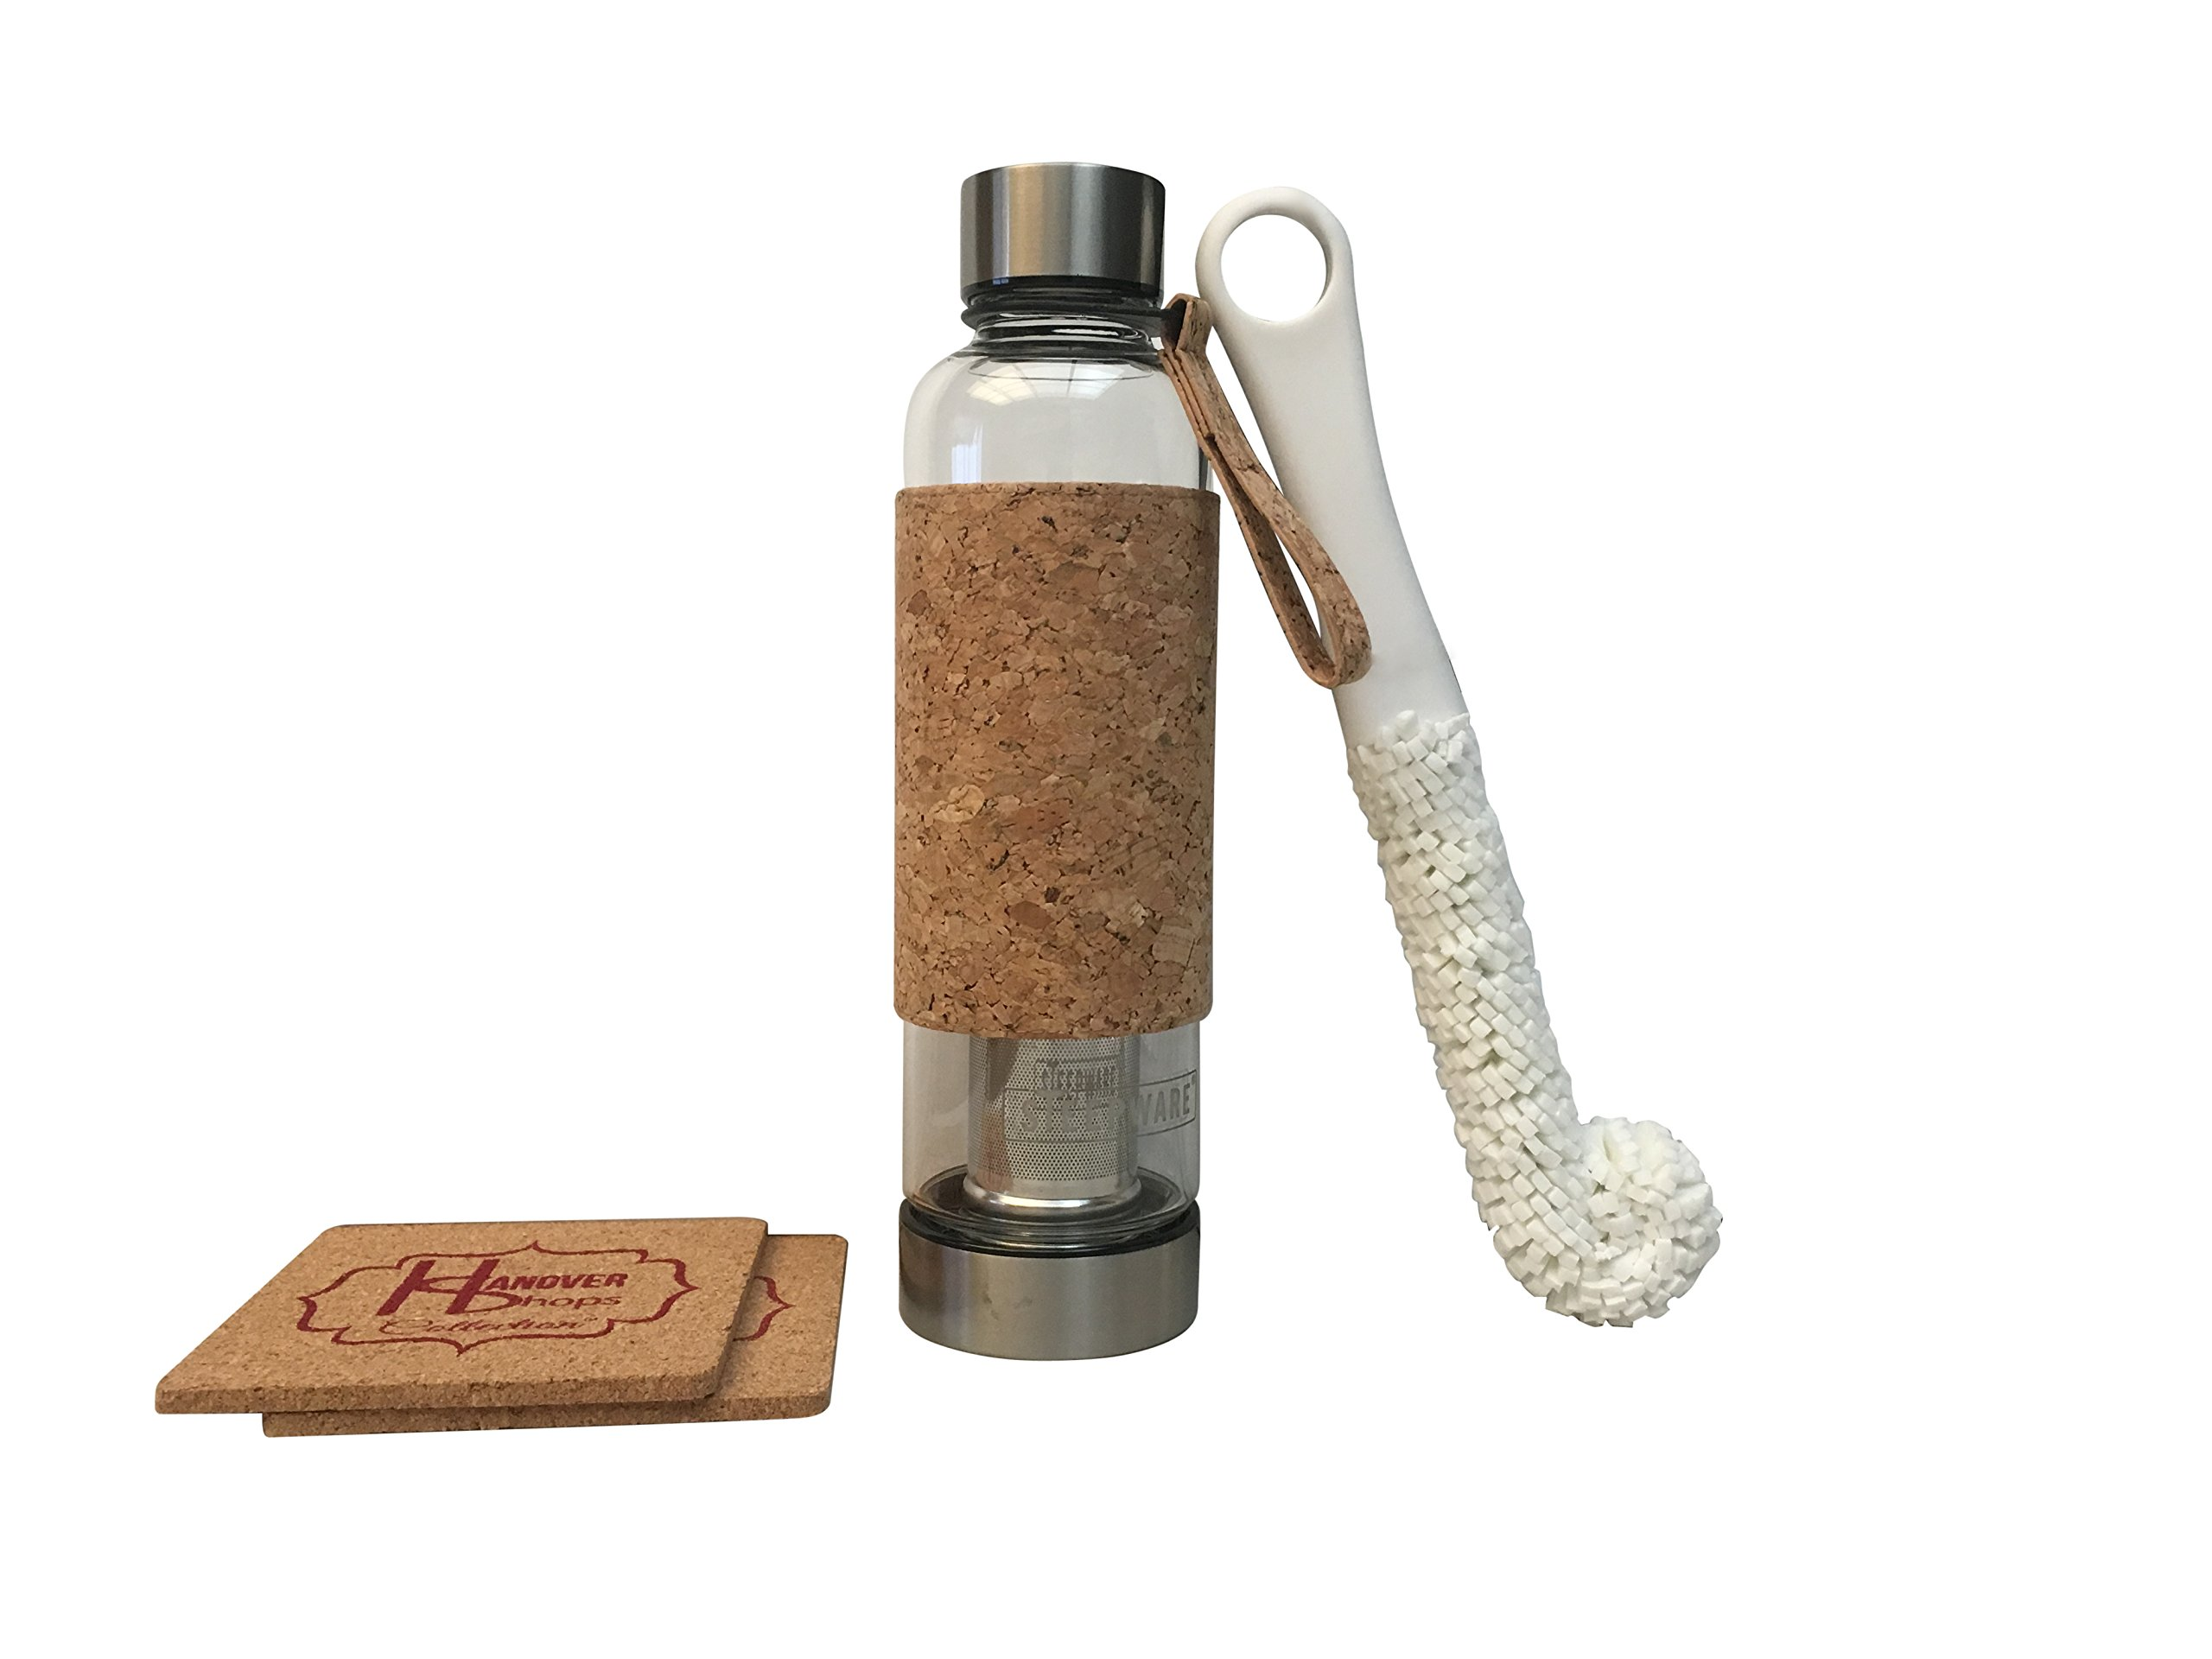 Urban Tea Tumbler with stainless steel infuser and lids, bottle sponge brush and cork coasters bundle